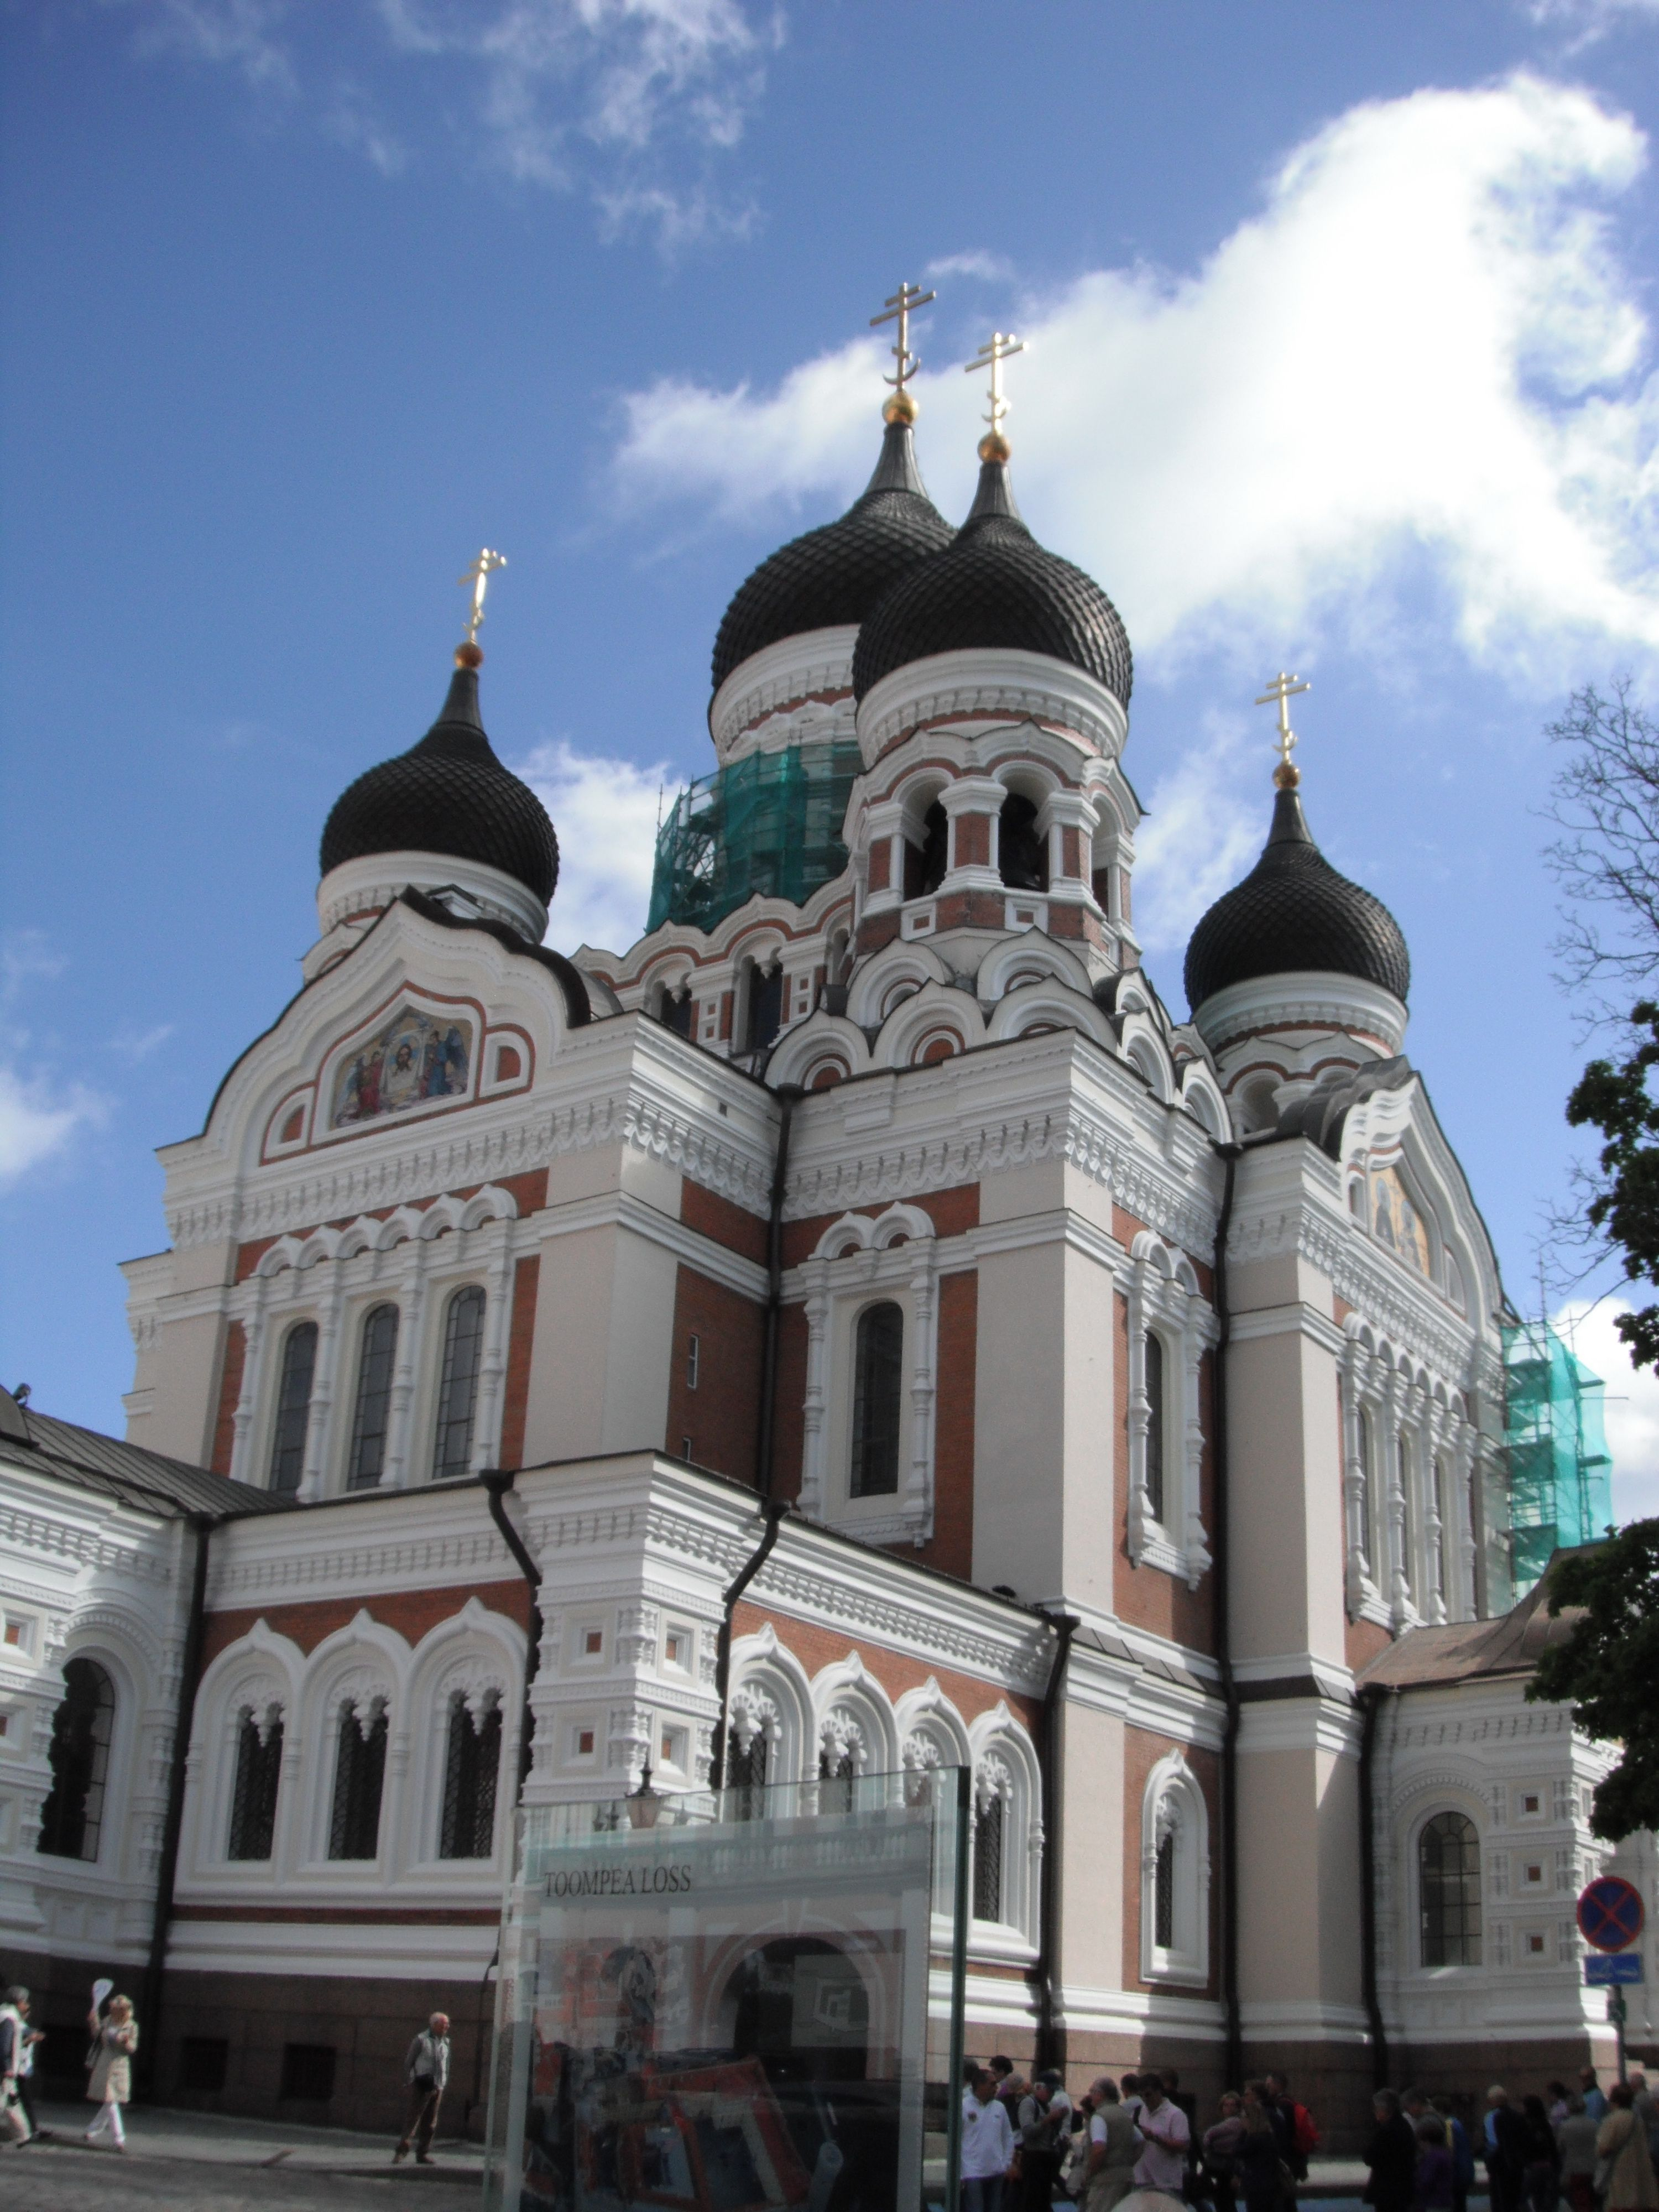 Alexander Nevsky Cathedral in Tallinn, Estonia. Proud to say this is my own, personal picture!